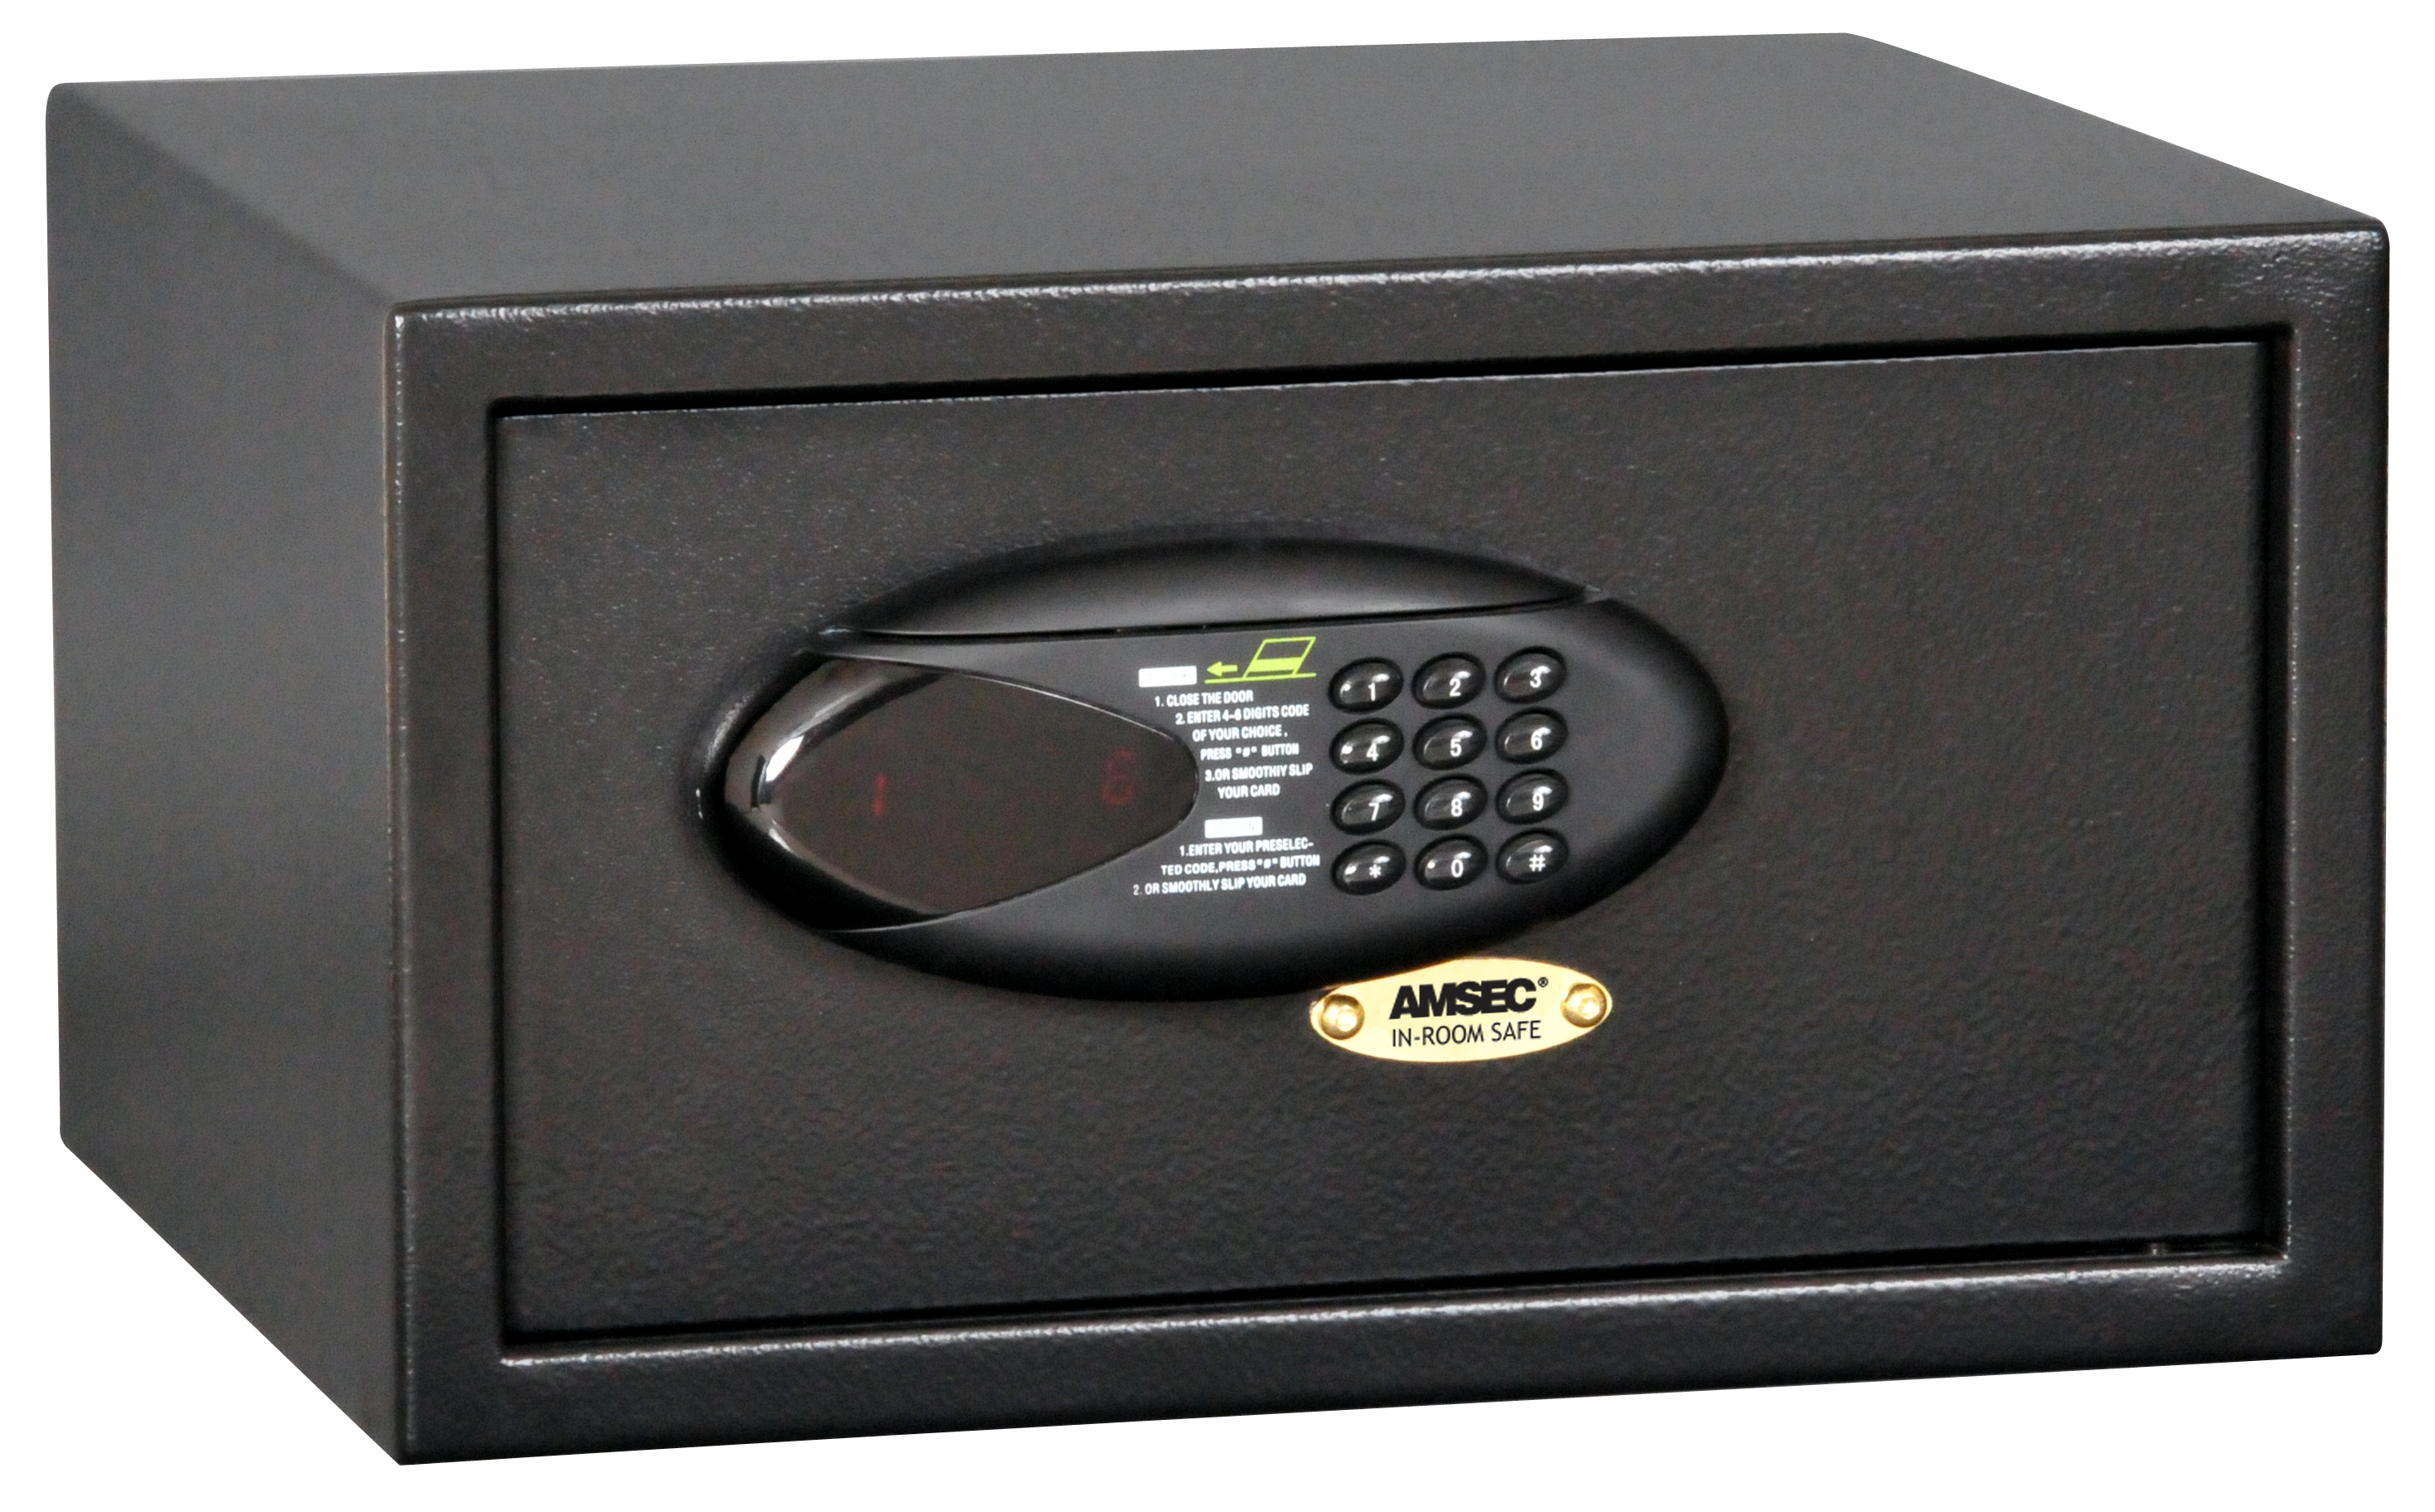 American security irc916e in room safe for Safe and secure products